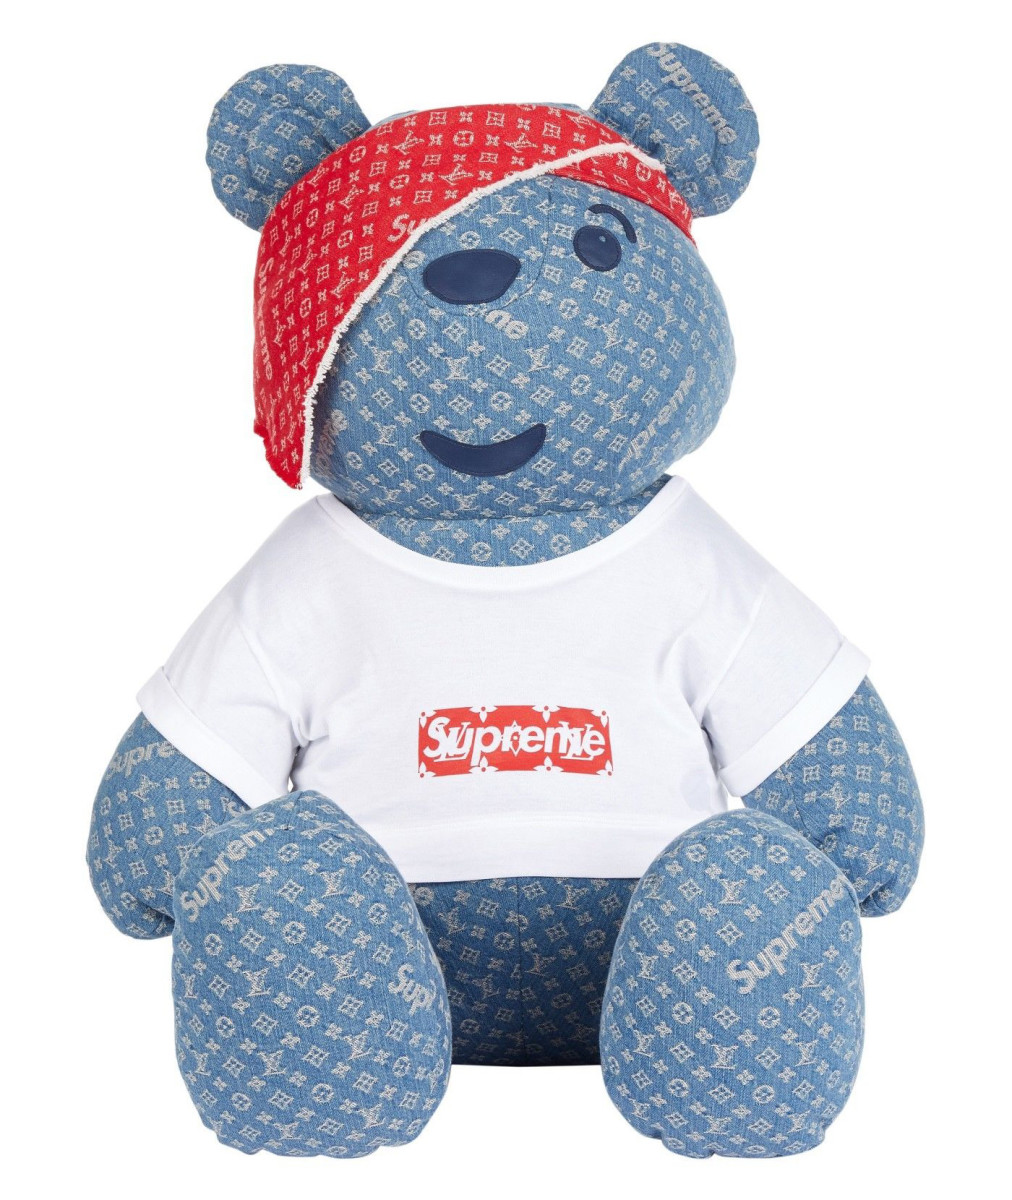 supreme-louis-vuitton-teddy-bear-01